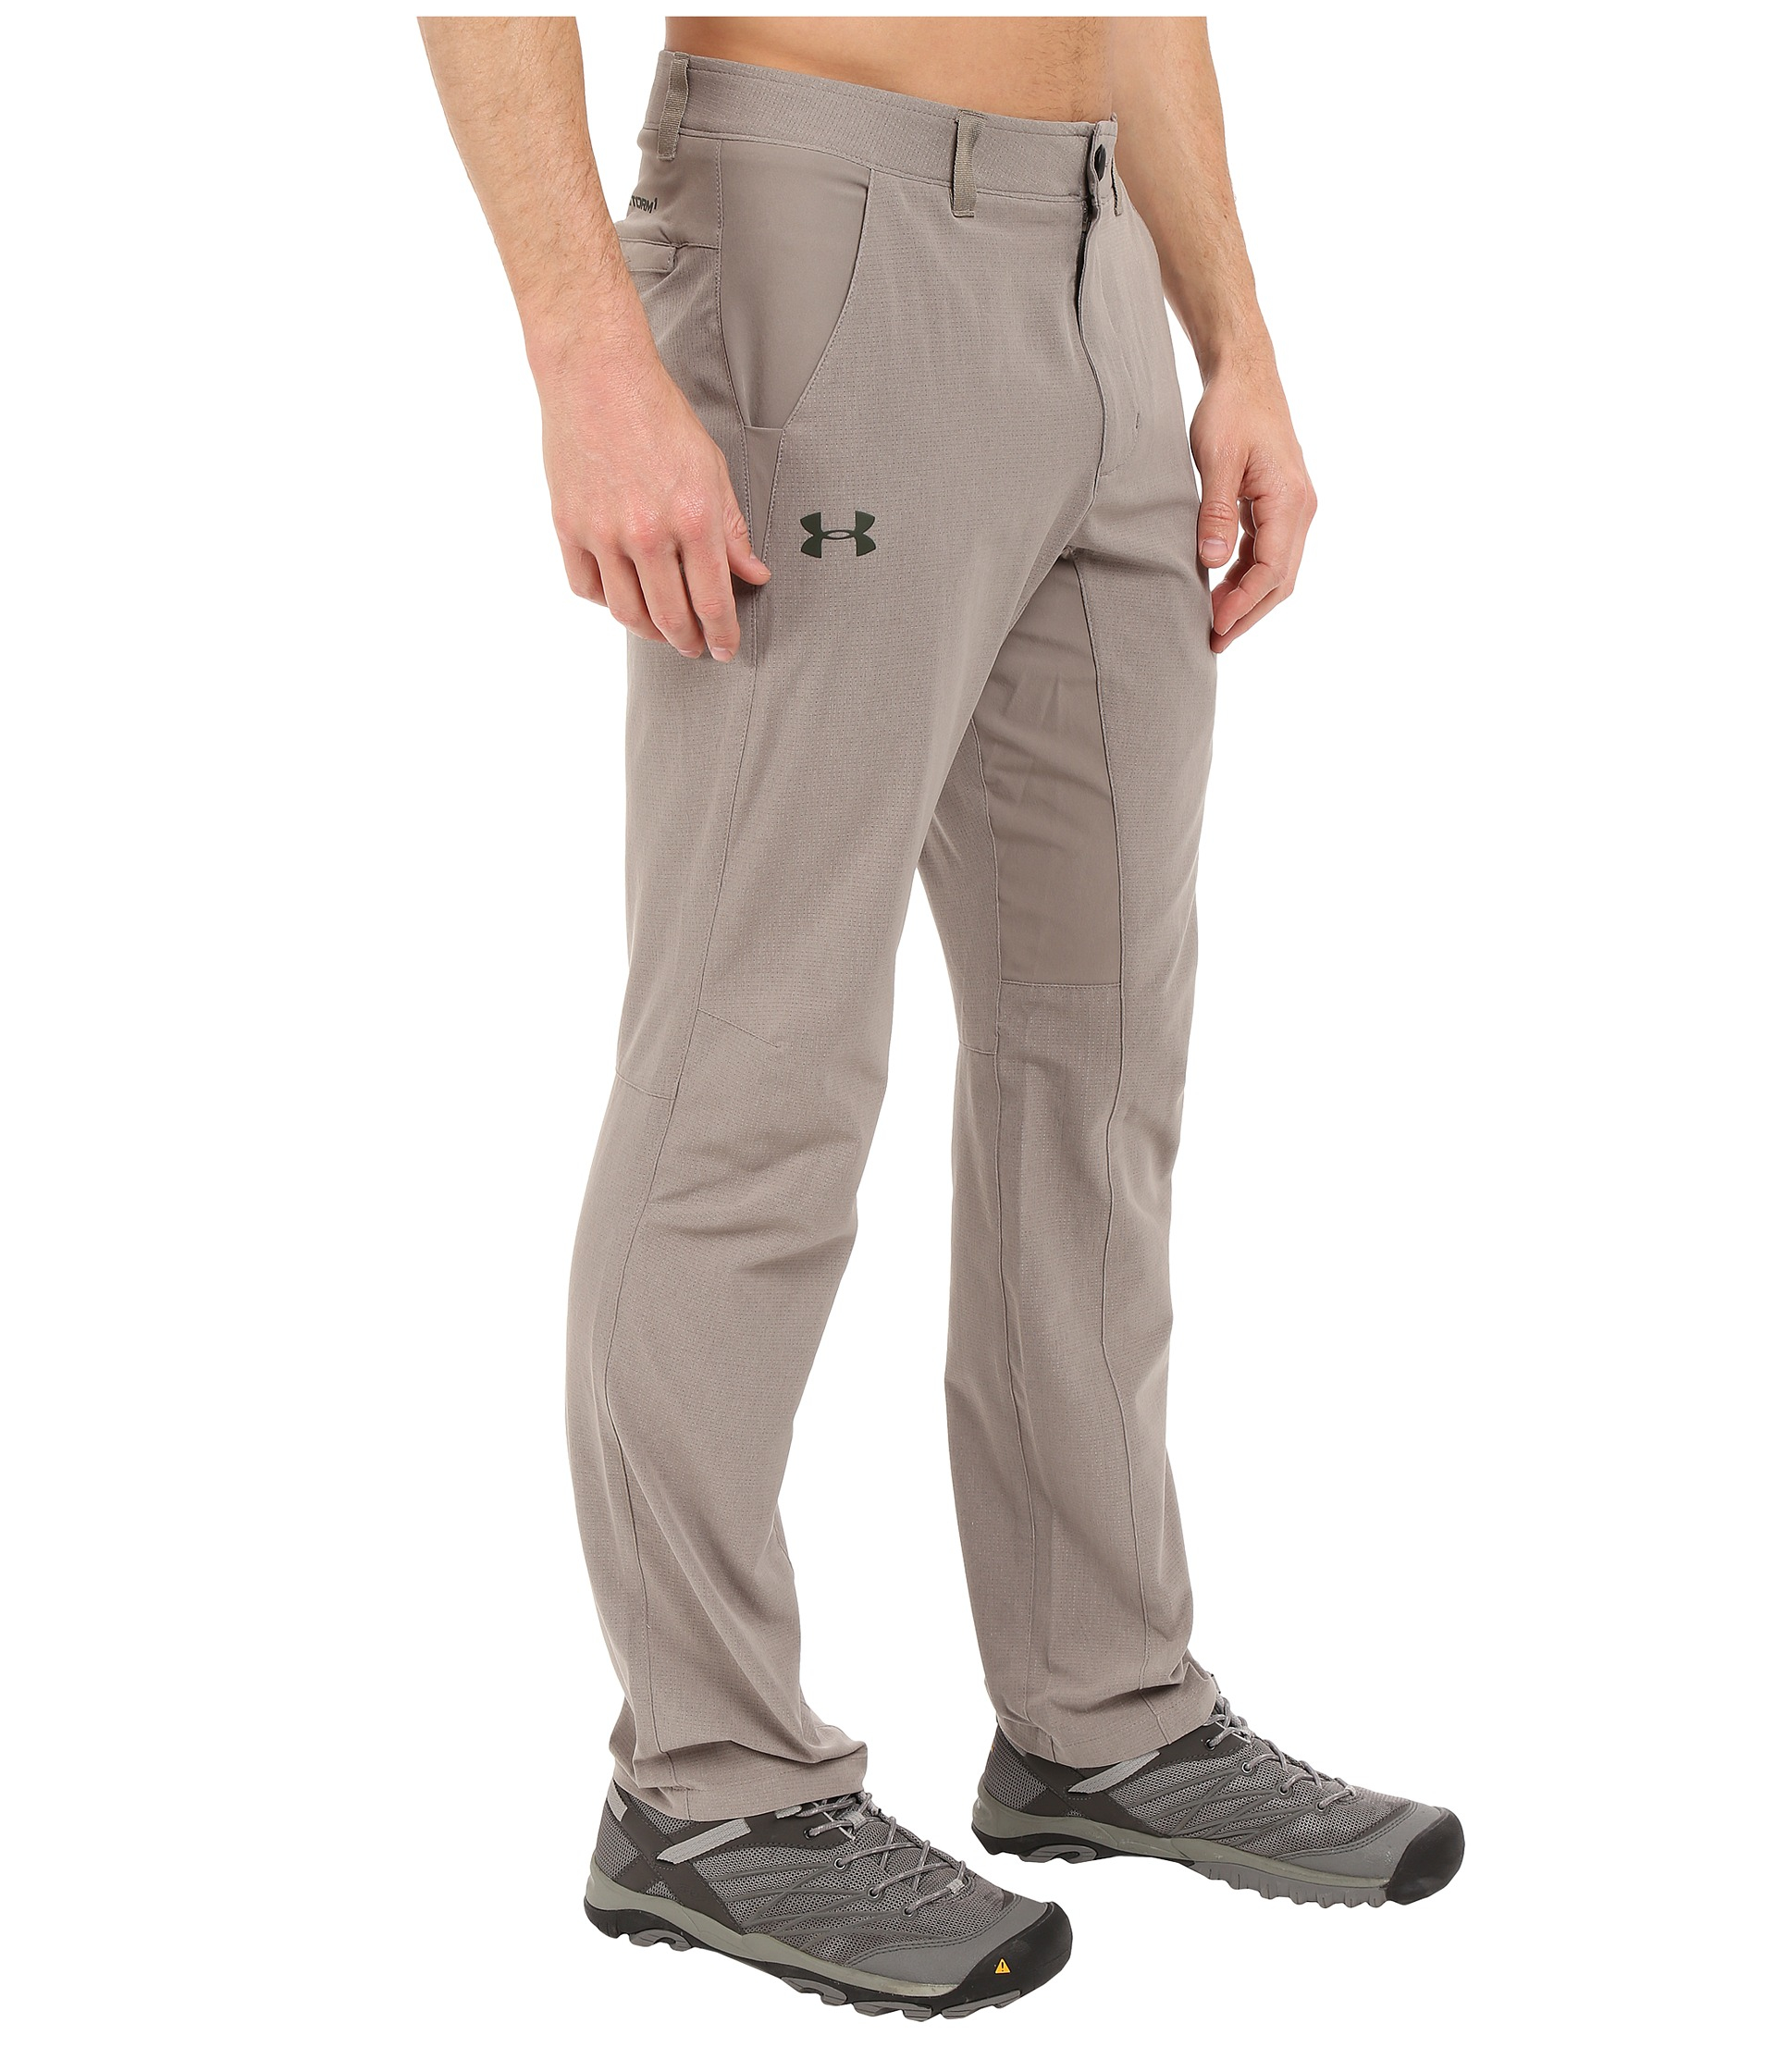 6f98900a89a91 Under Armour Ua Armourvent Trail Pants in Gray for Men - Lyst